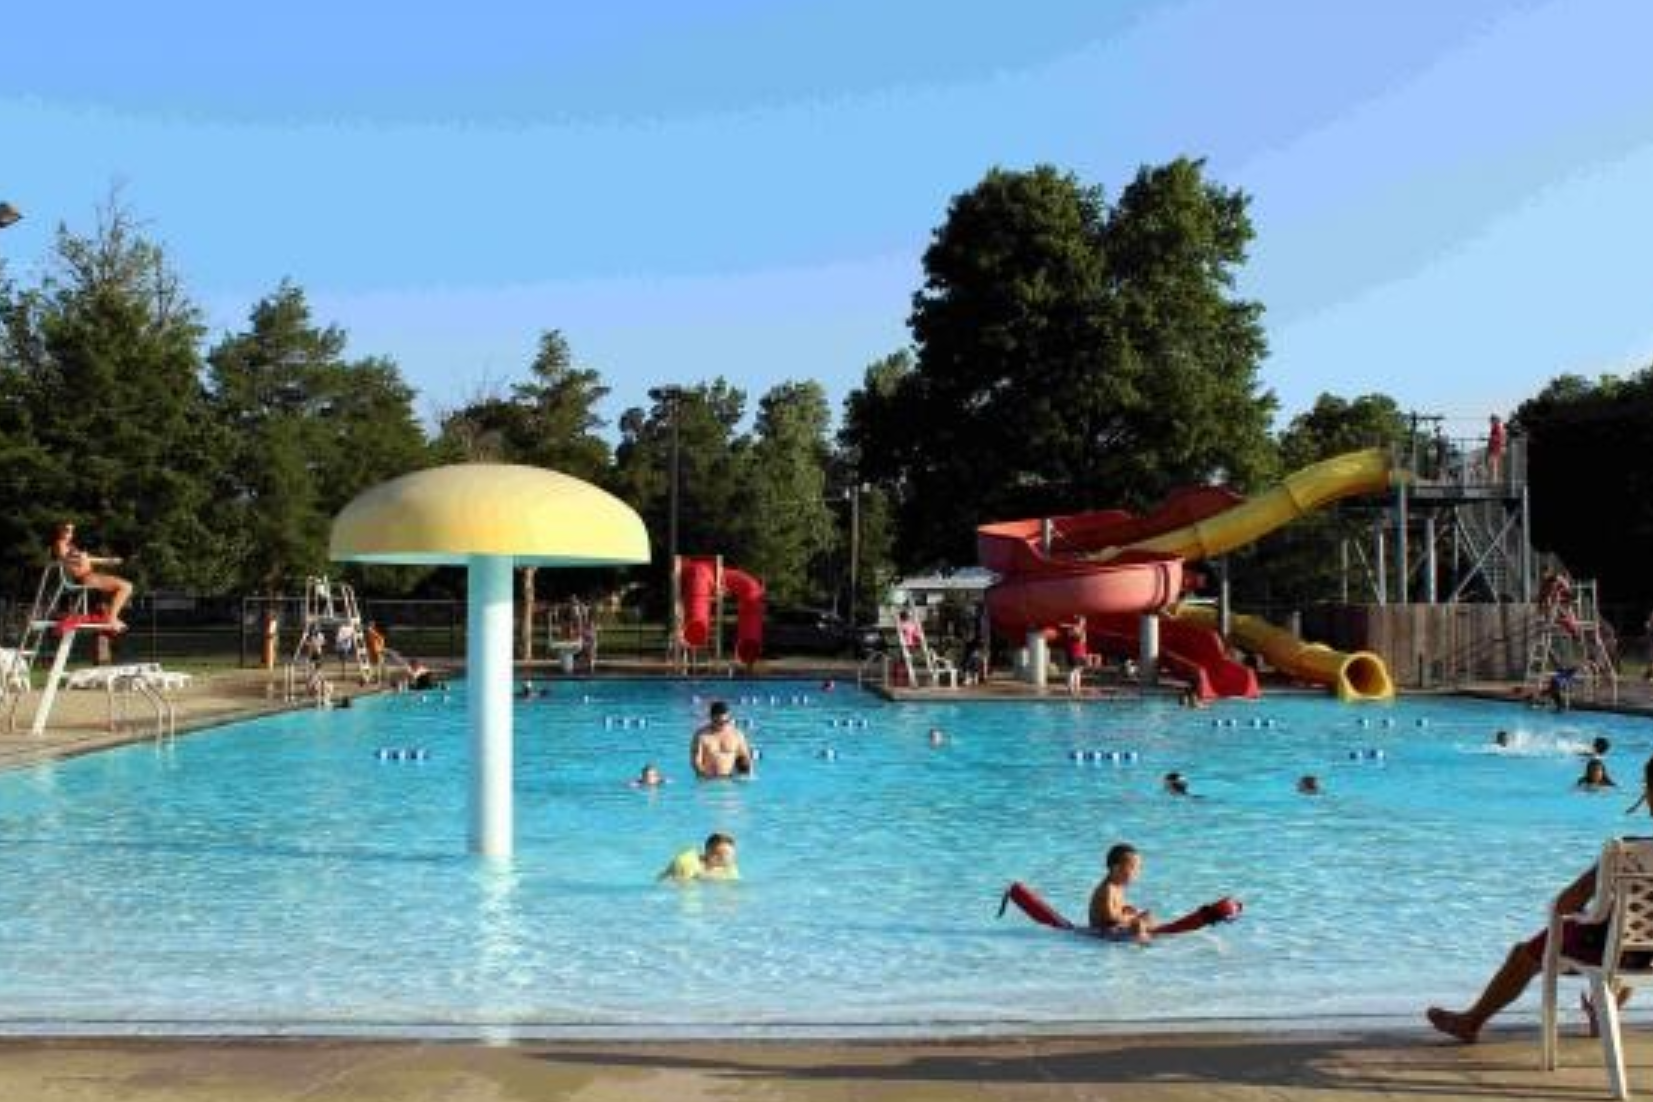 Wagoner WaterPark open for the 2018 season